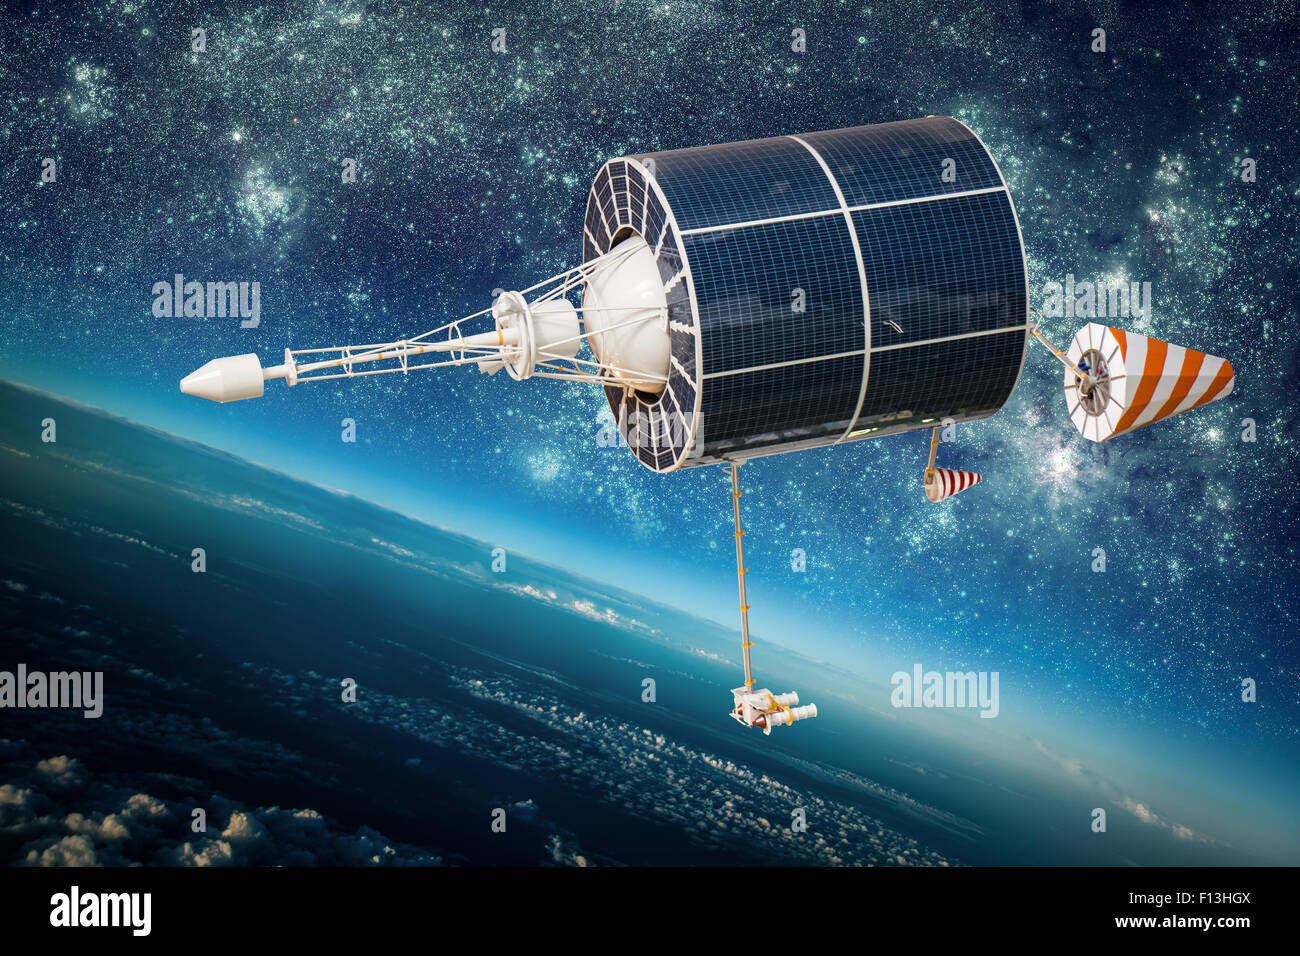 Space satellite orbiting the earth. Elements of this image furnished by NASA. - Stock Image